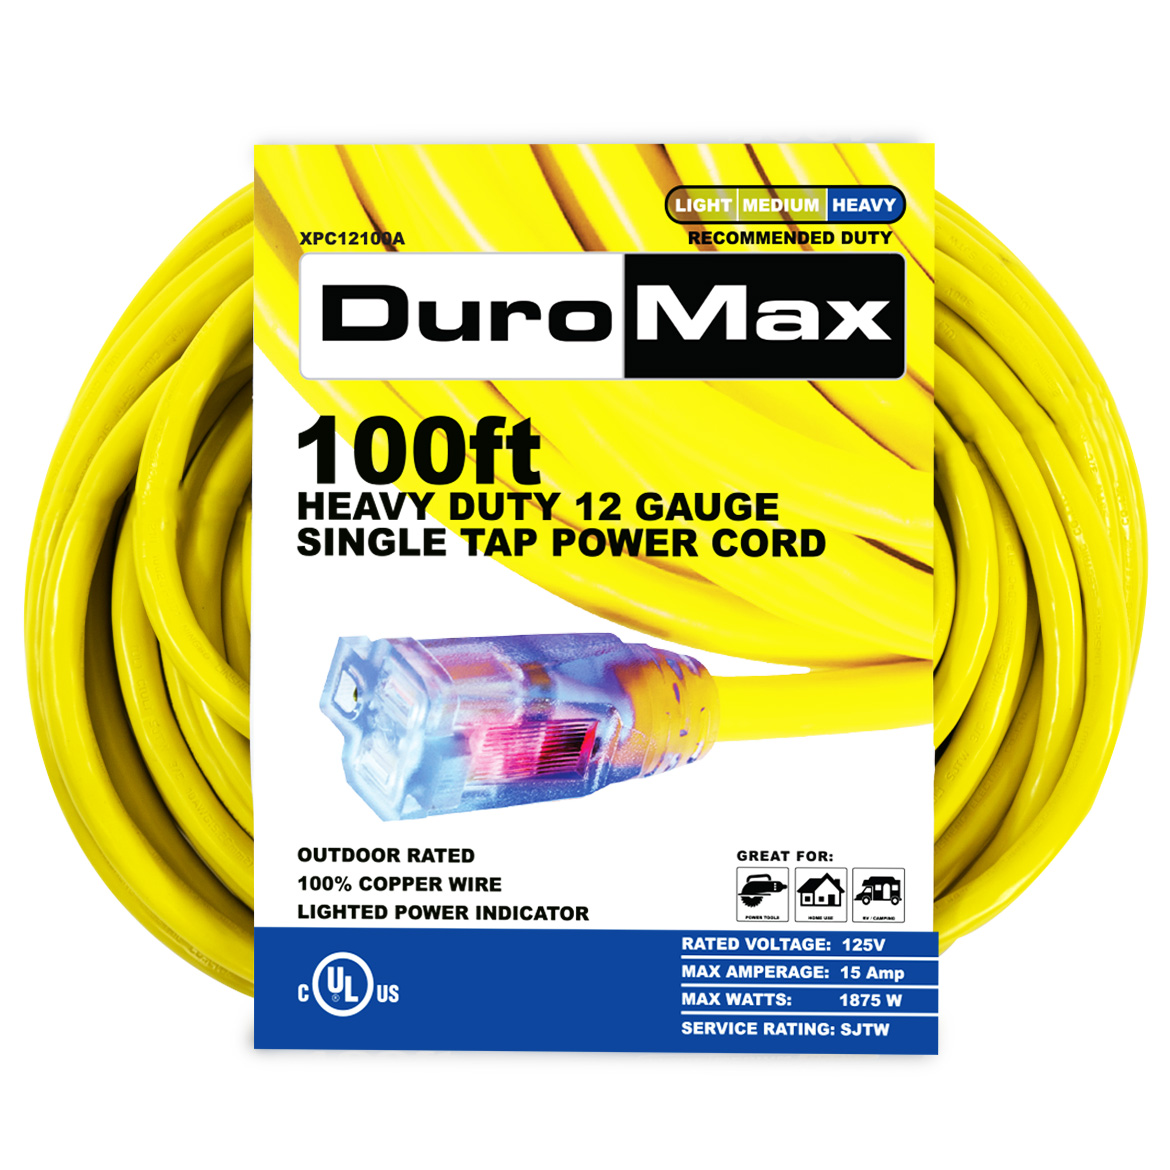 DuroMax XPC12100A 100-Foot 12 Gauge Single Tap Extension Power Cord